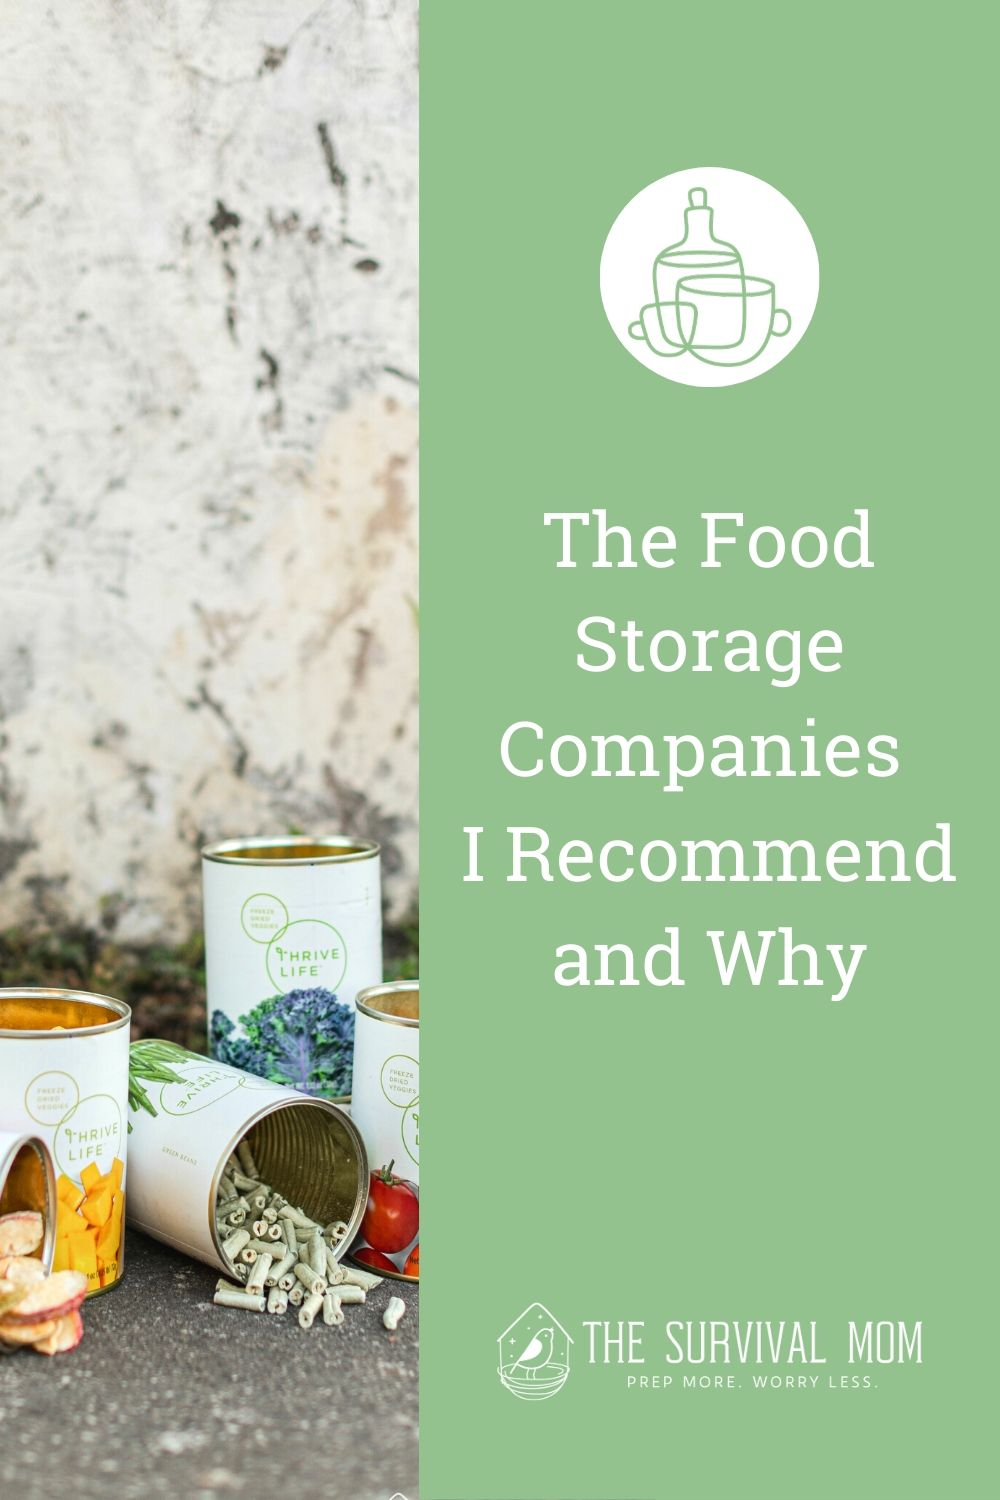 The Food Storage Companies I Recommend and Why via The Survival Mom